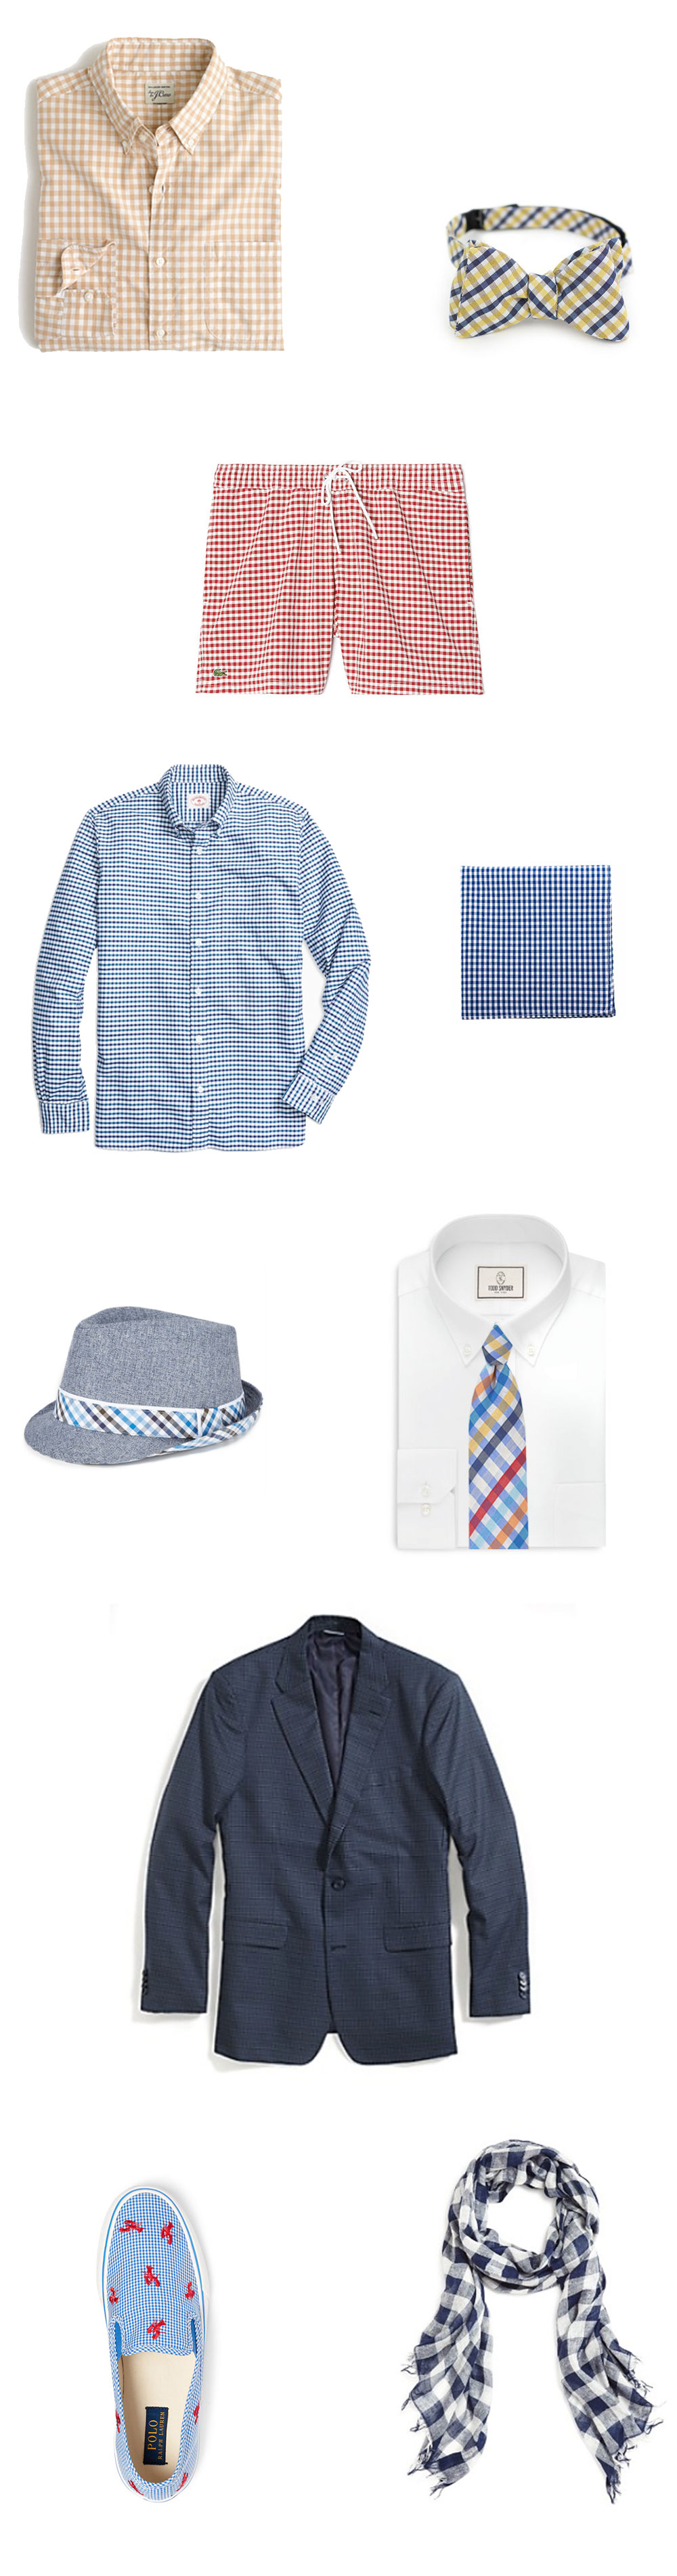 Gingham Fashion Items For Men